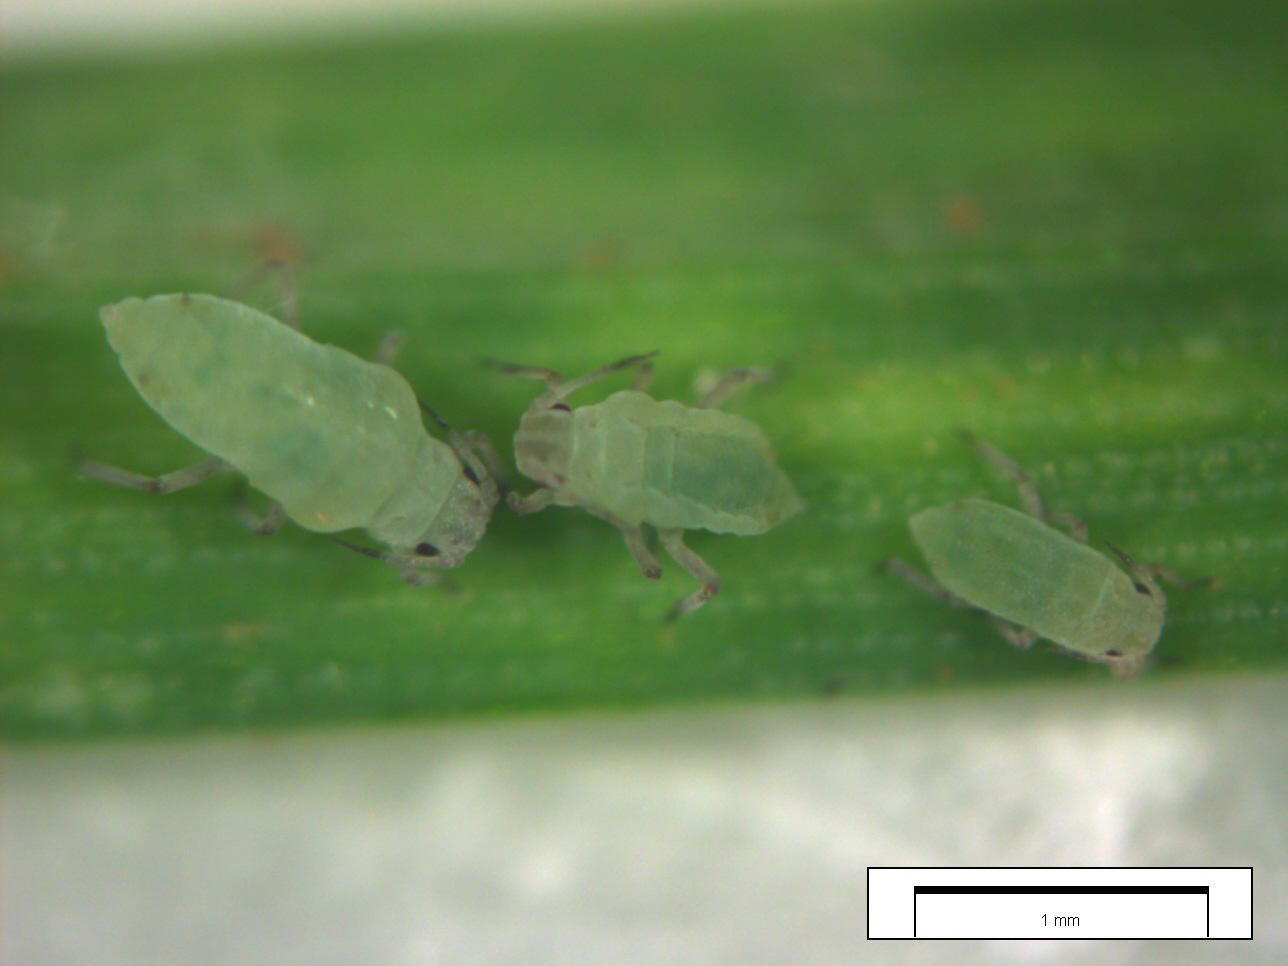 Wheat aphids on plant